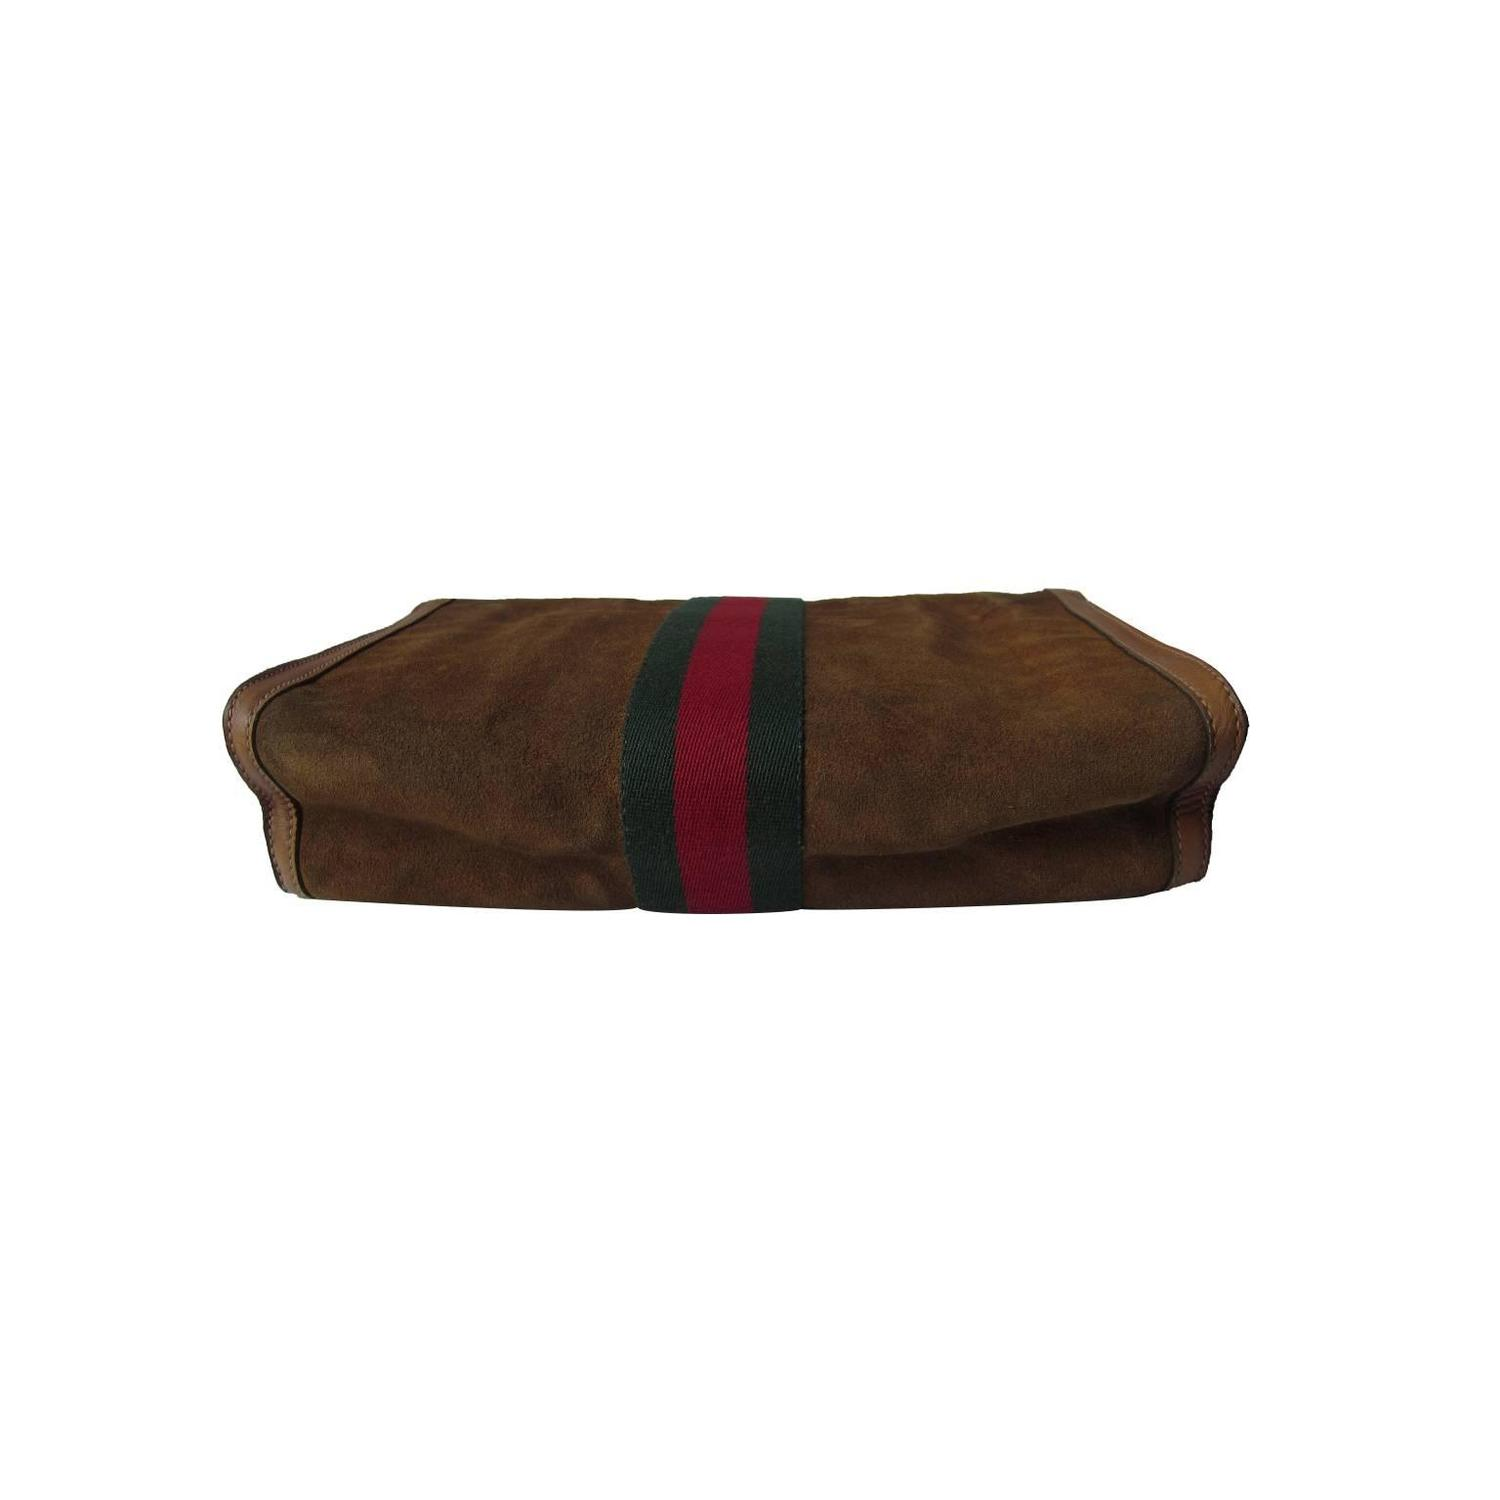 Gucci Classic Suede Clutch Bag 60s For Sale at 1stdibs